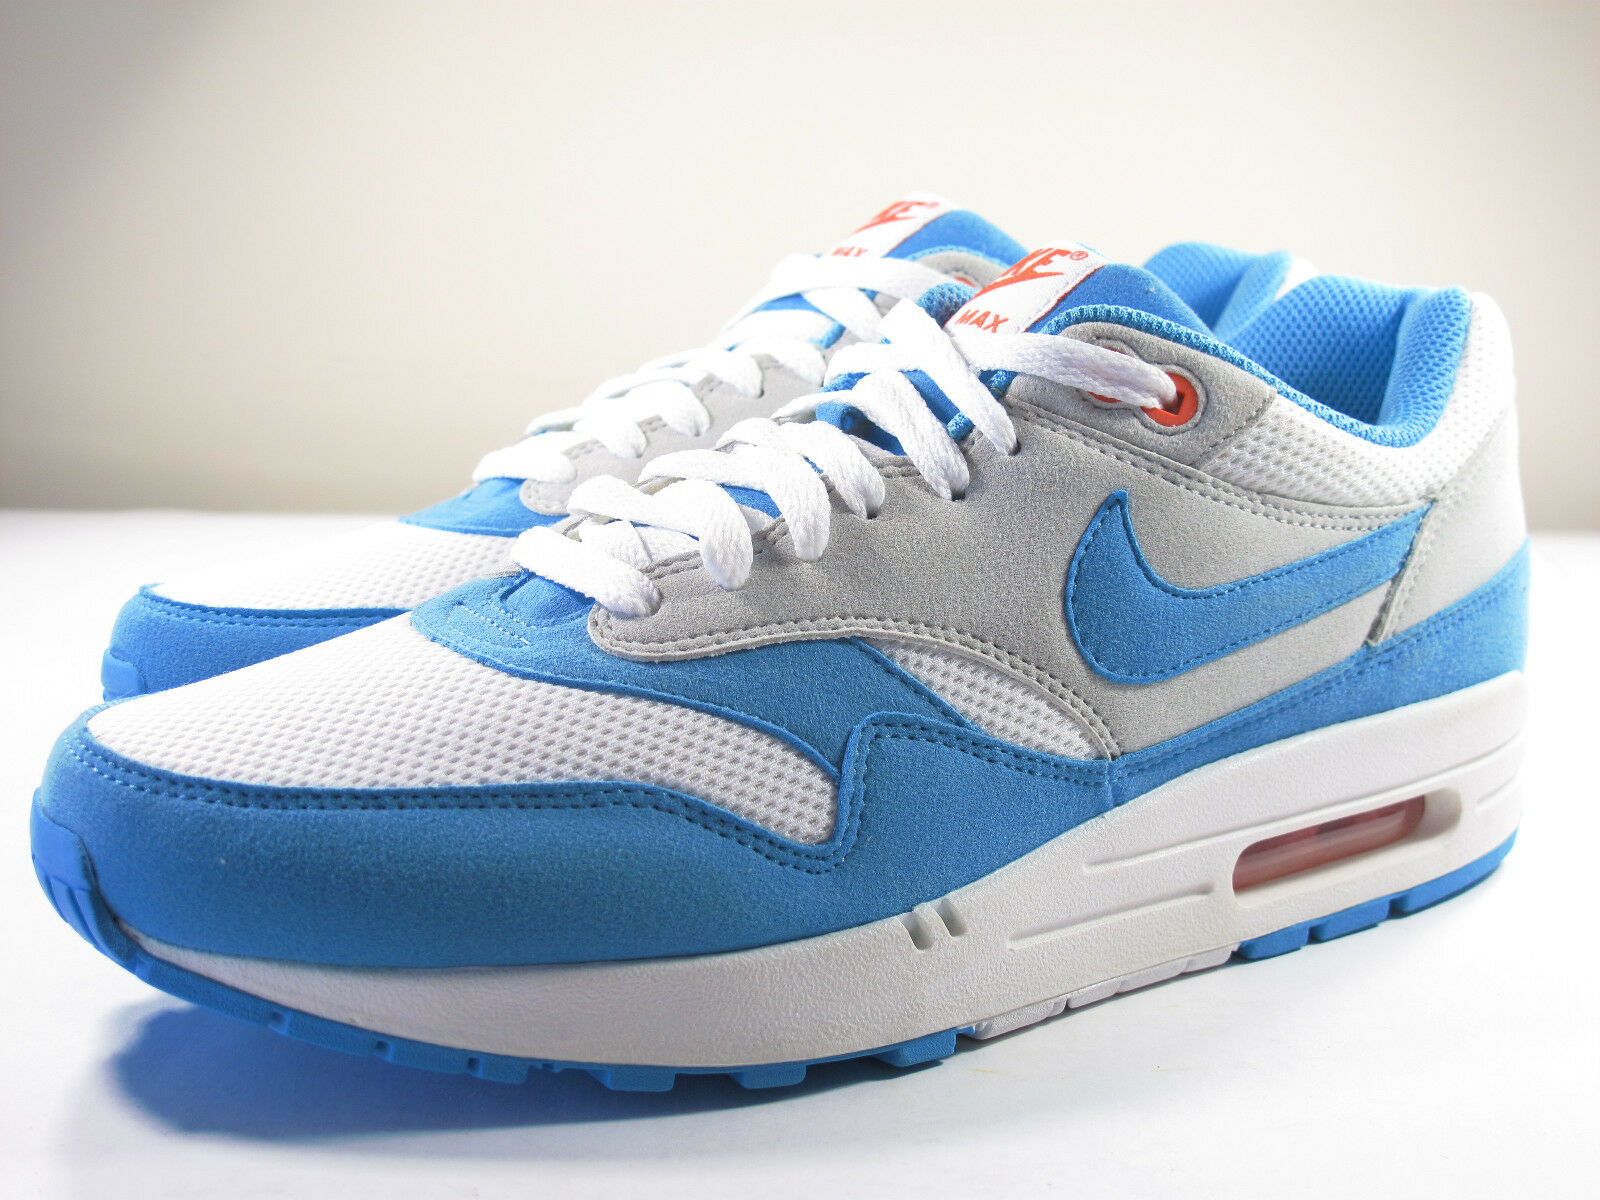 DS NIKE 2009 AIR MAX 1 SCUBA BLUE 9.5 ATMOS PATTA INFRARED SAFARI 90 CAMO 95 EM